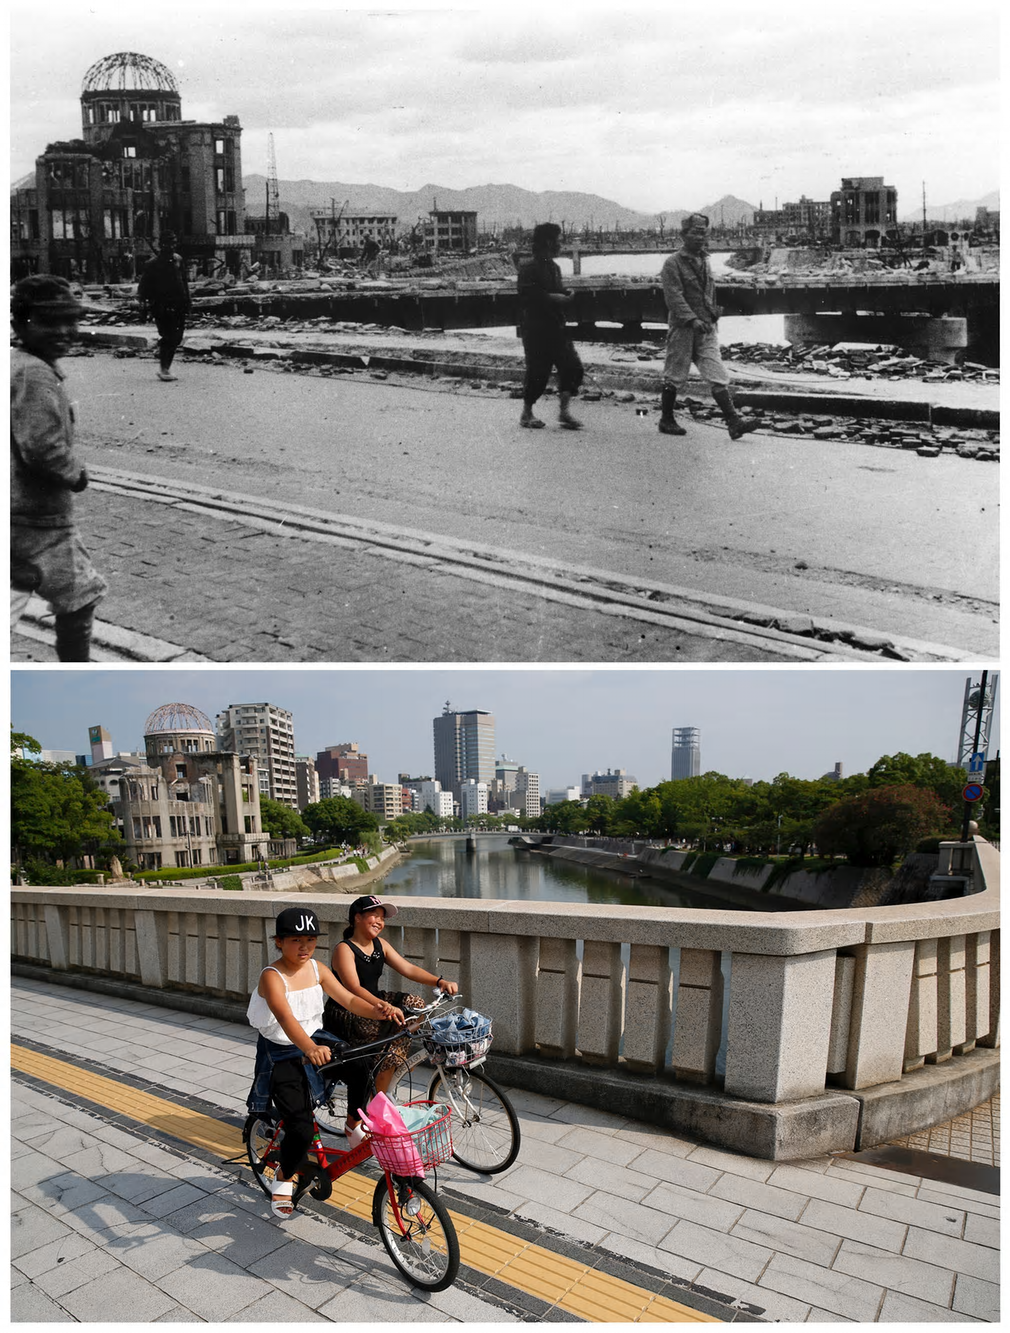 Hiroshima, then and now.